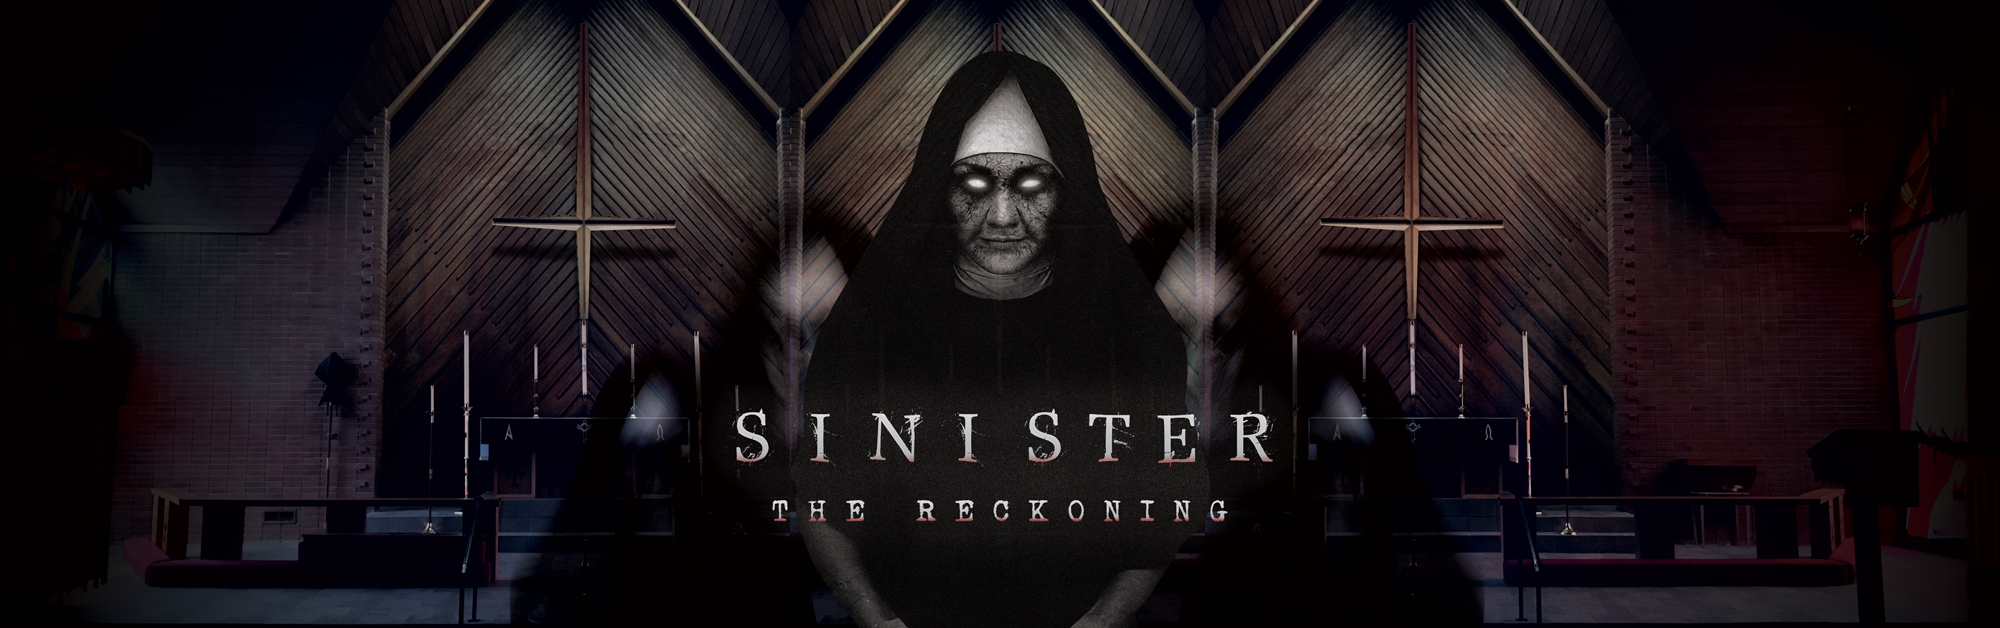 sinister the reckoning banner